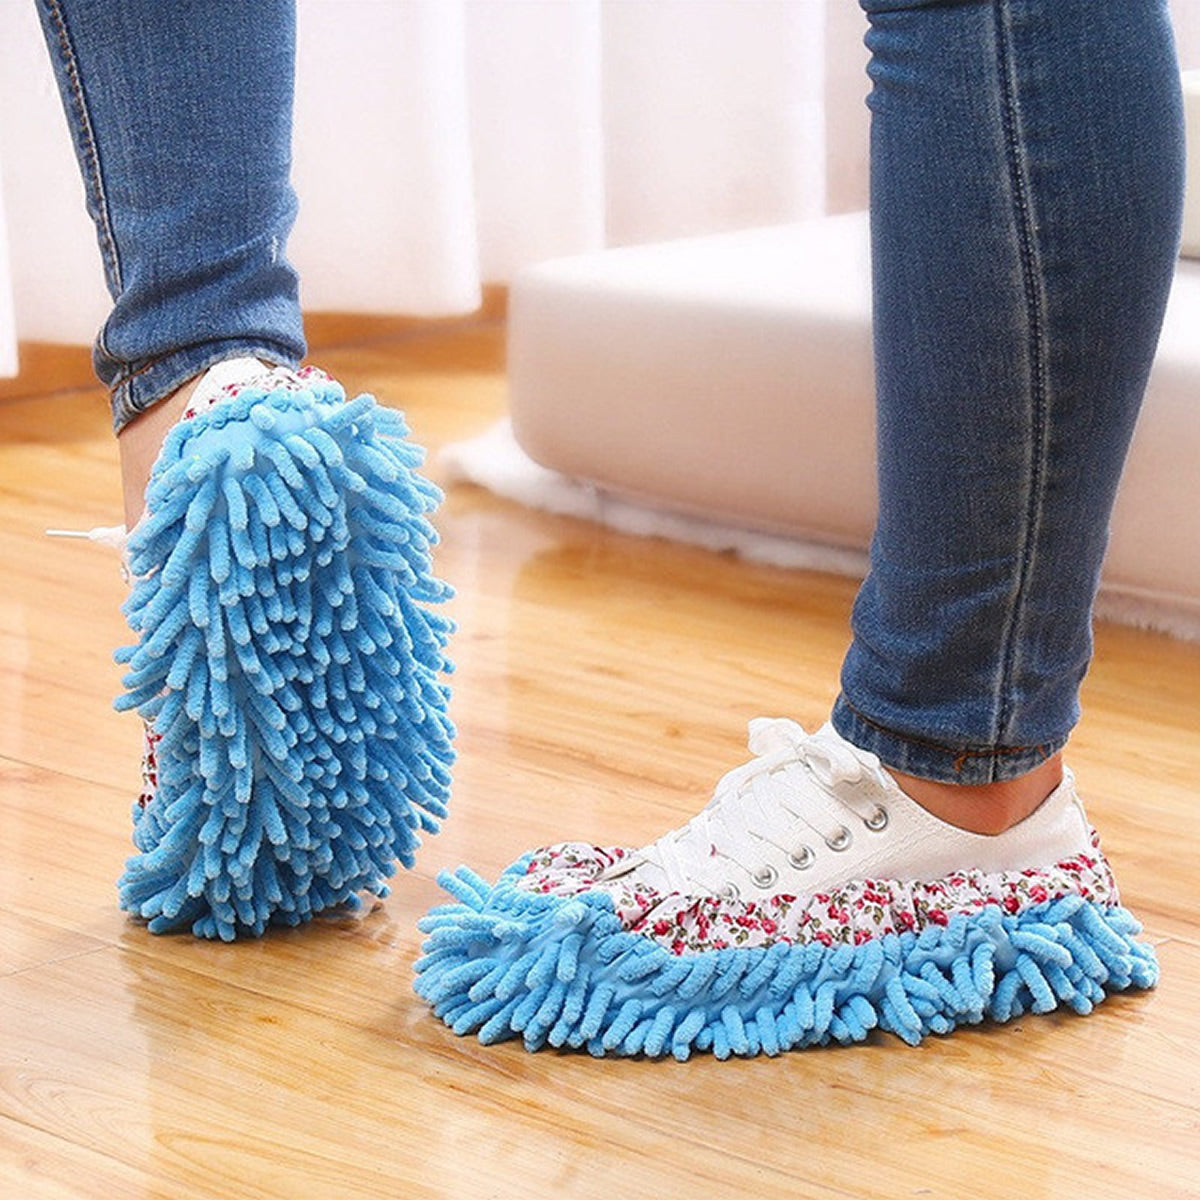 shopify-Lazy Maid Quick Mop Slip-On Slippers 3 prs / 6 pcs-3